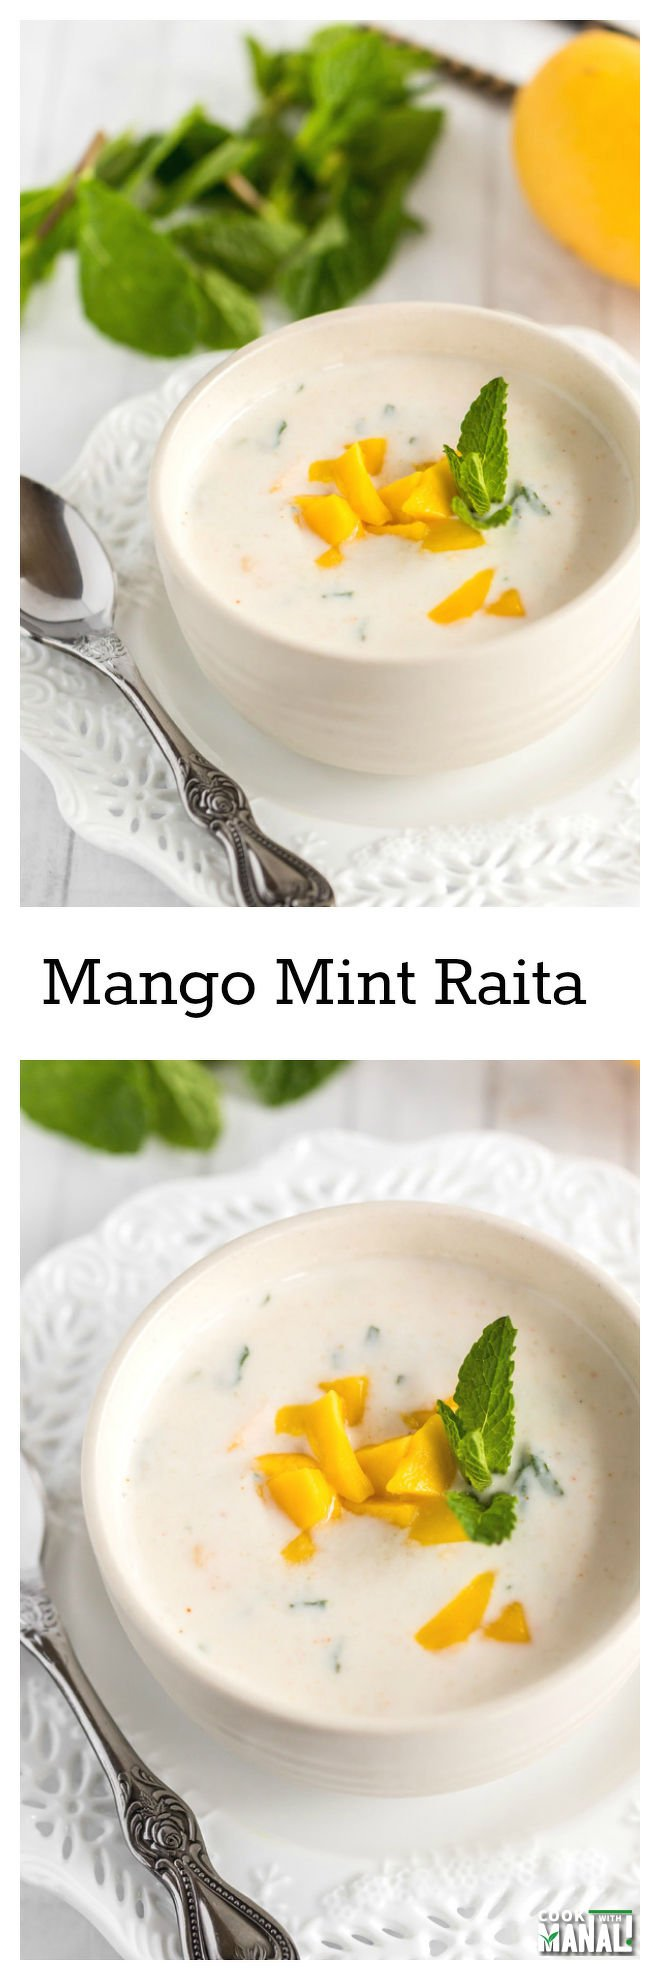 Mango Mint Raita Collage